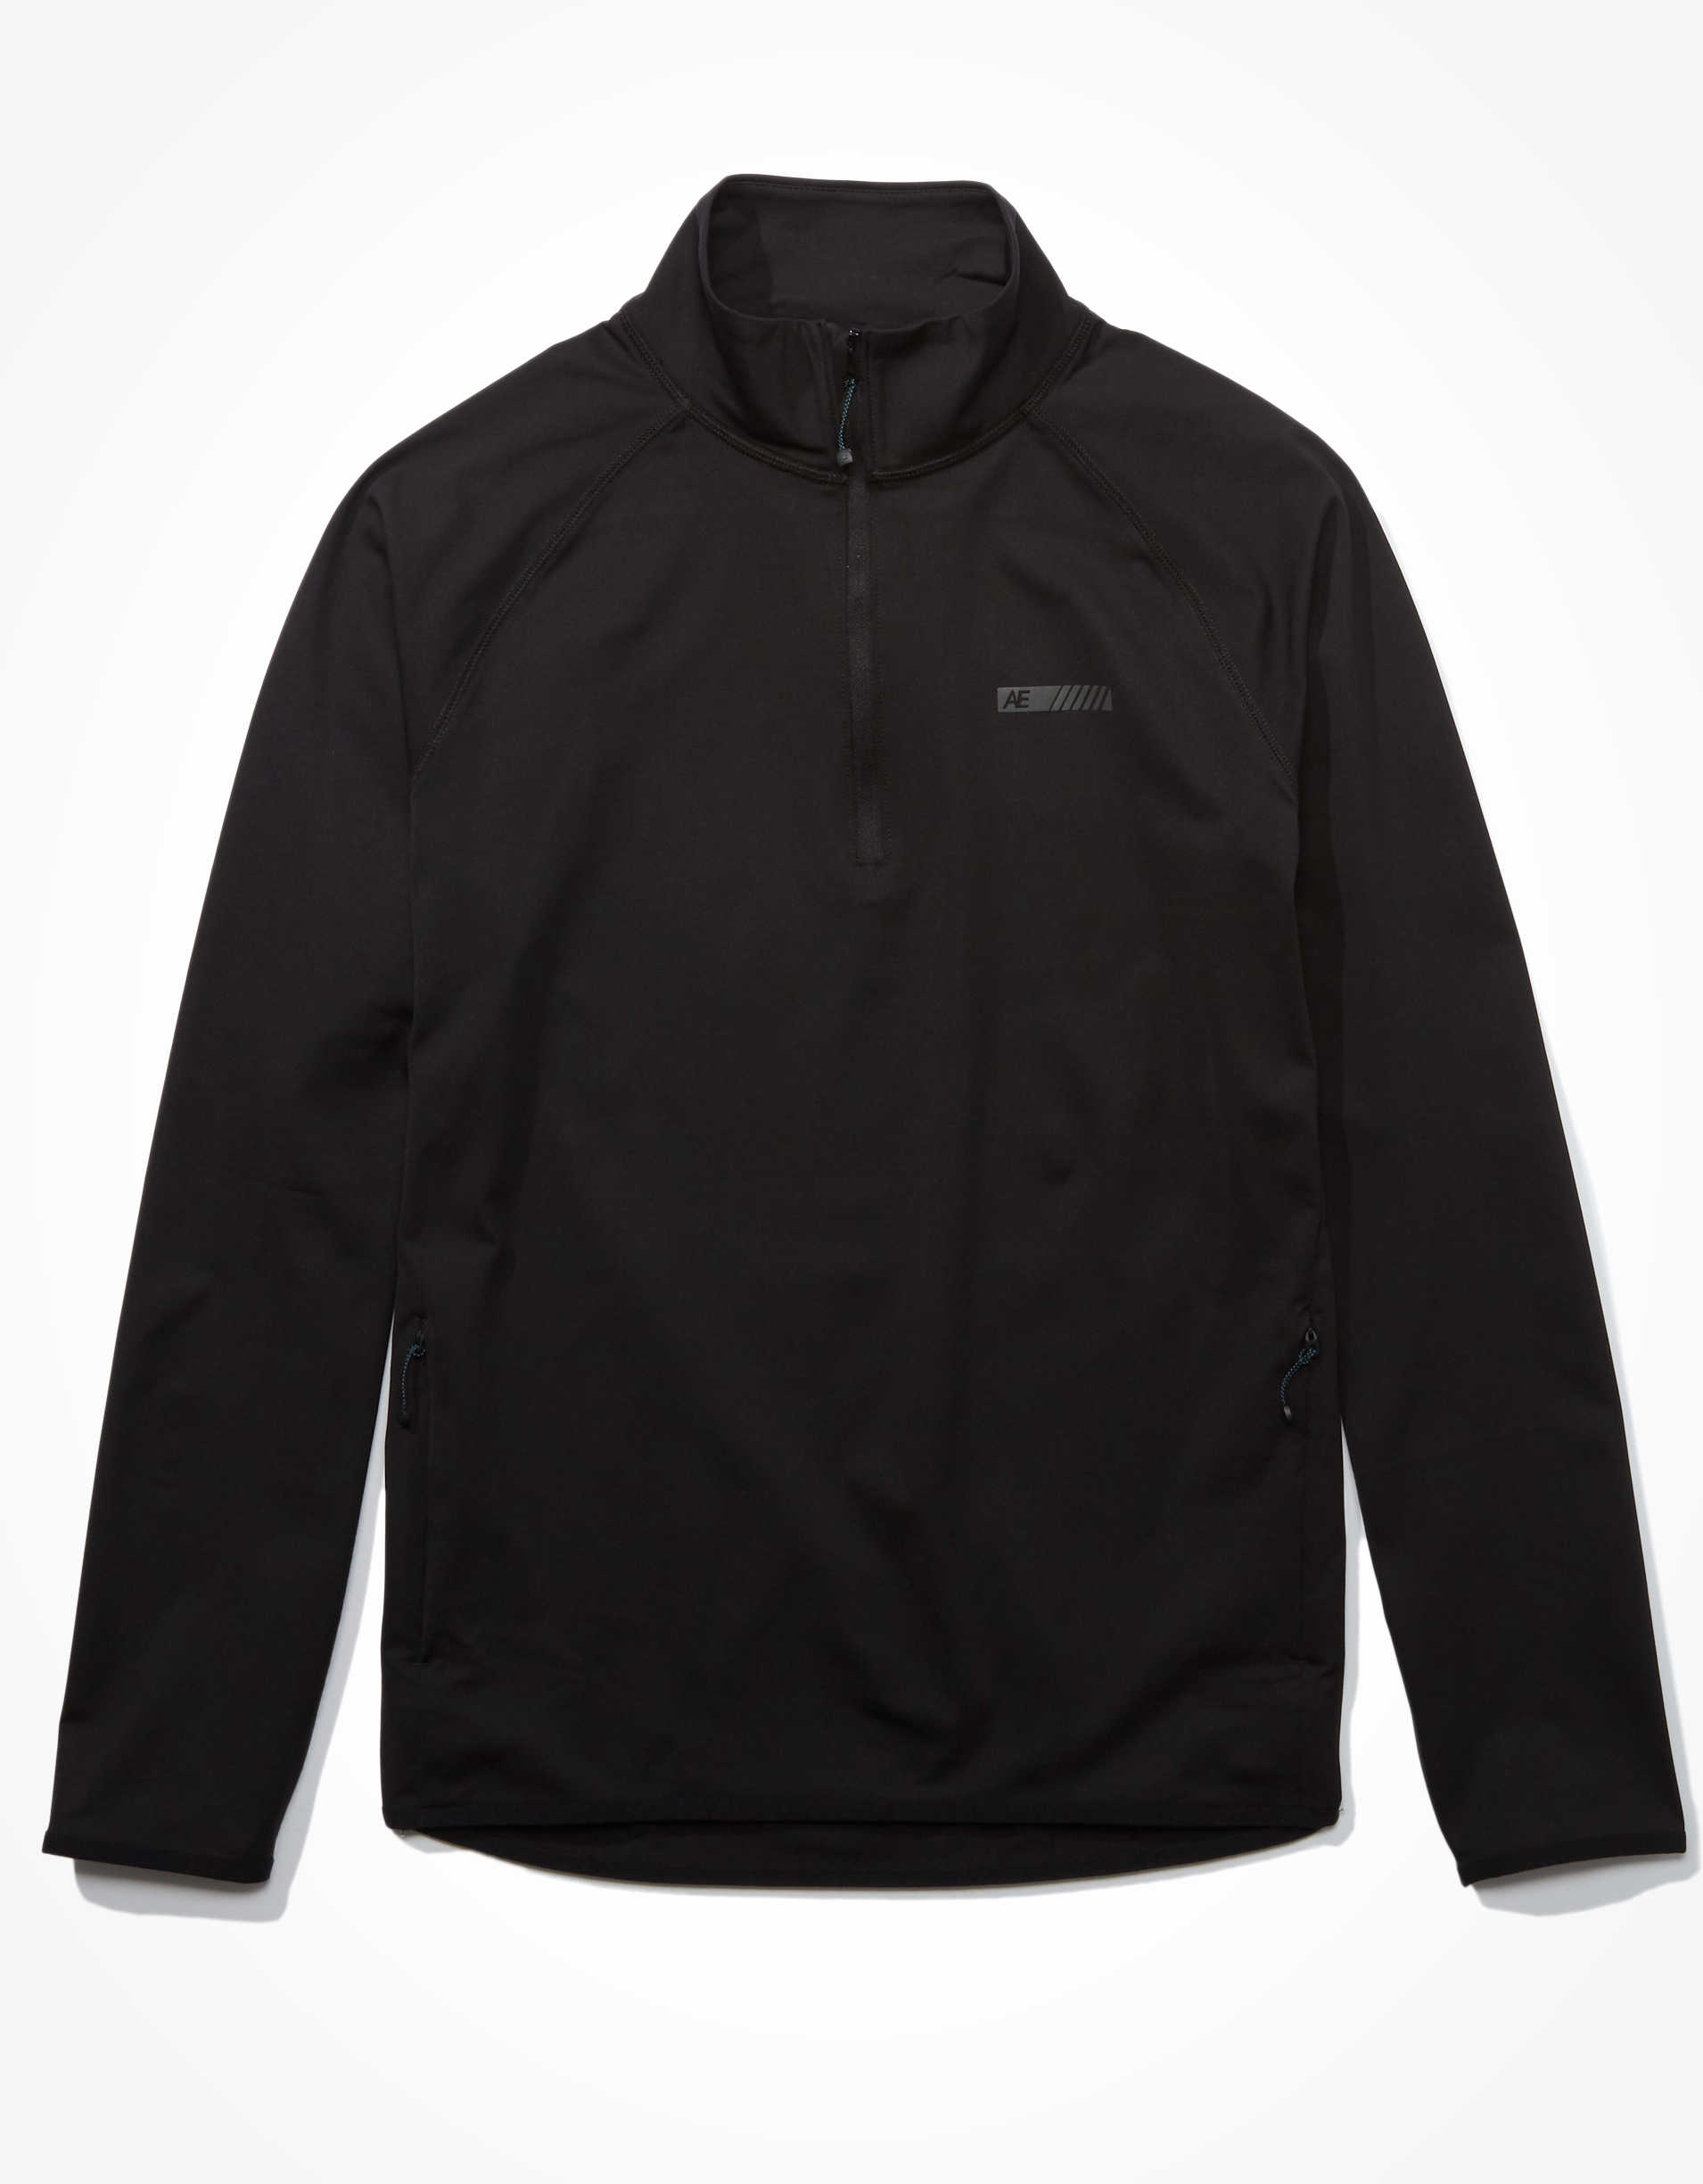 AE Training Quarter-Zip Sweatshirt